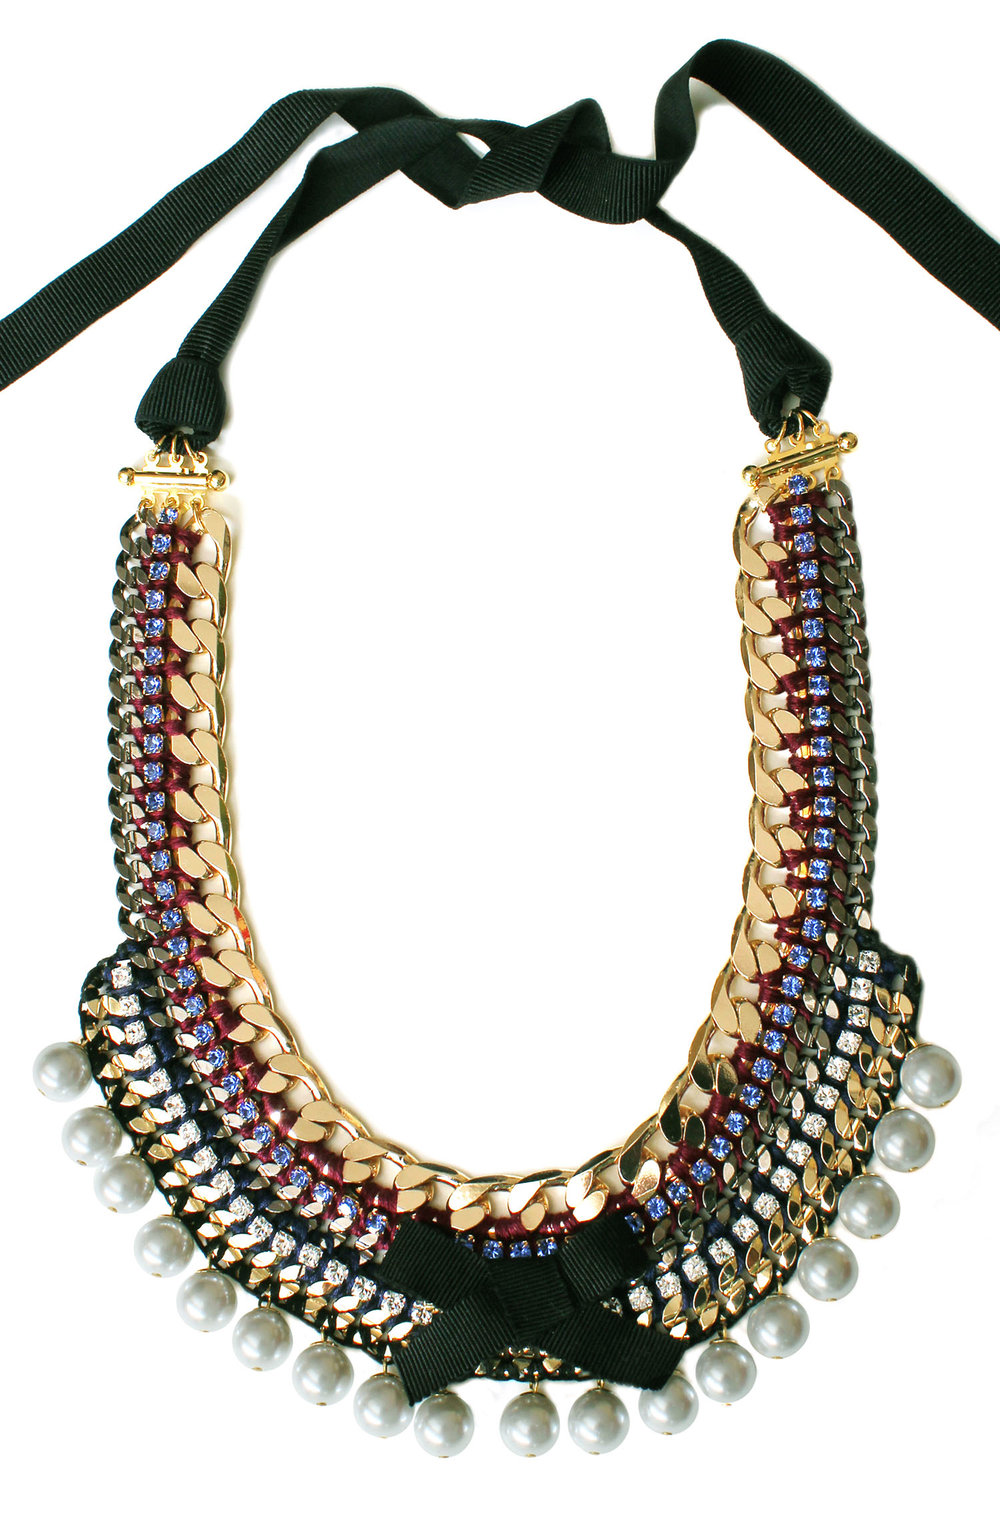 068 - Sapphire & Pearl Multi Necklace 2.jpg